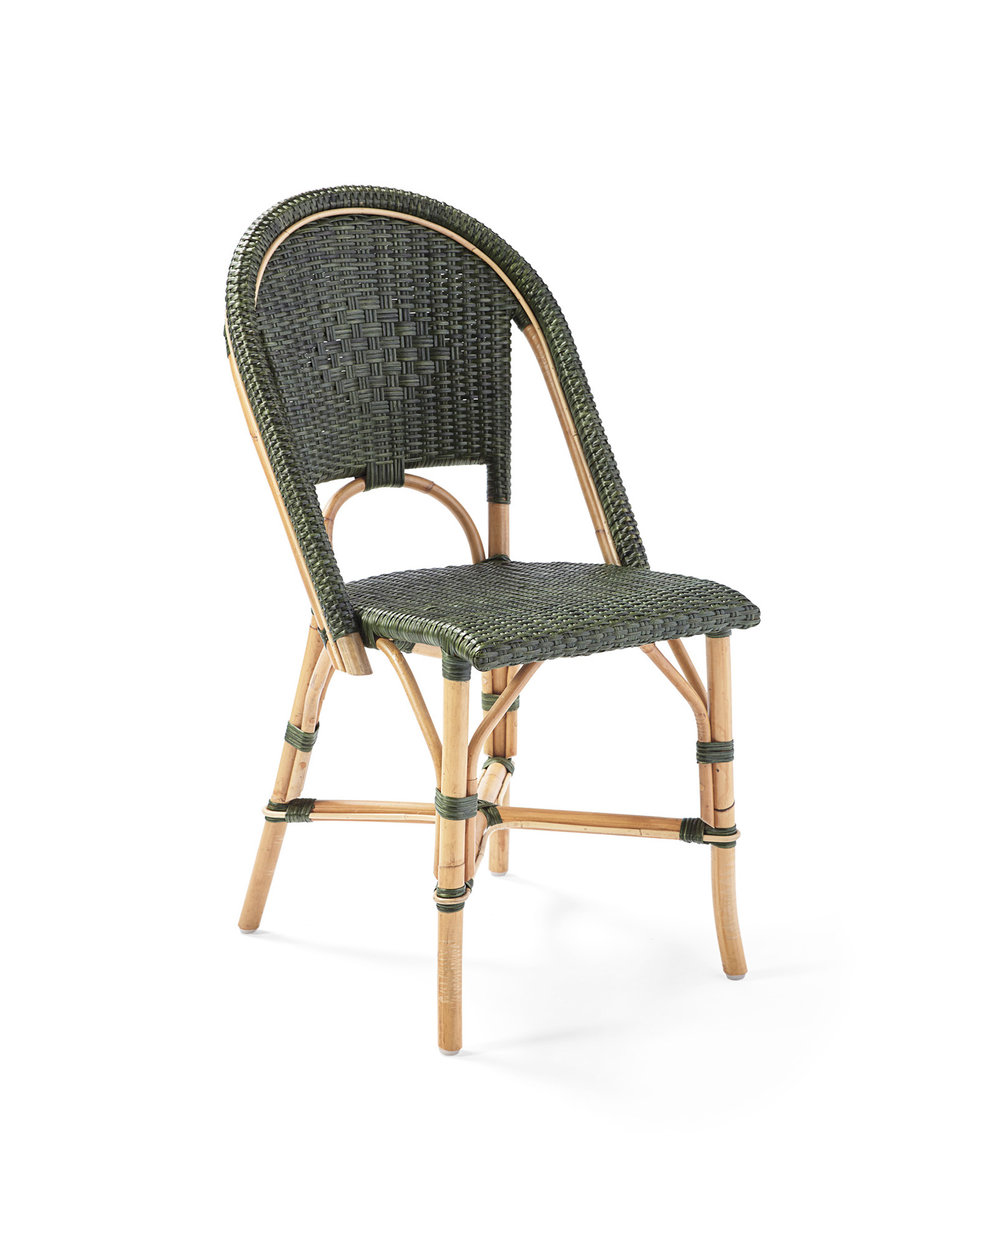 Furn_Stonewashed_Riviera_Side_Chair_Green_Angle_MV_0060_Crop_SH.jpg